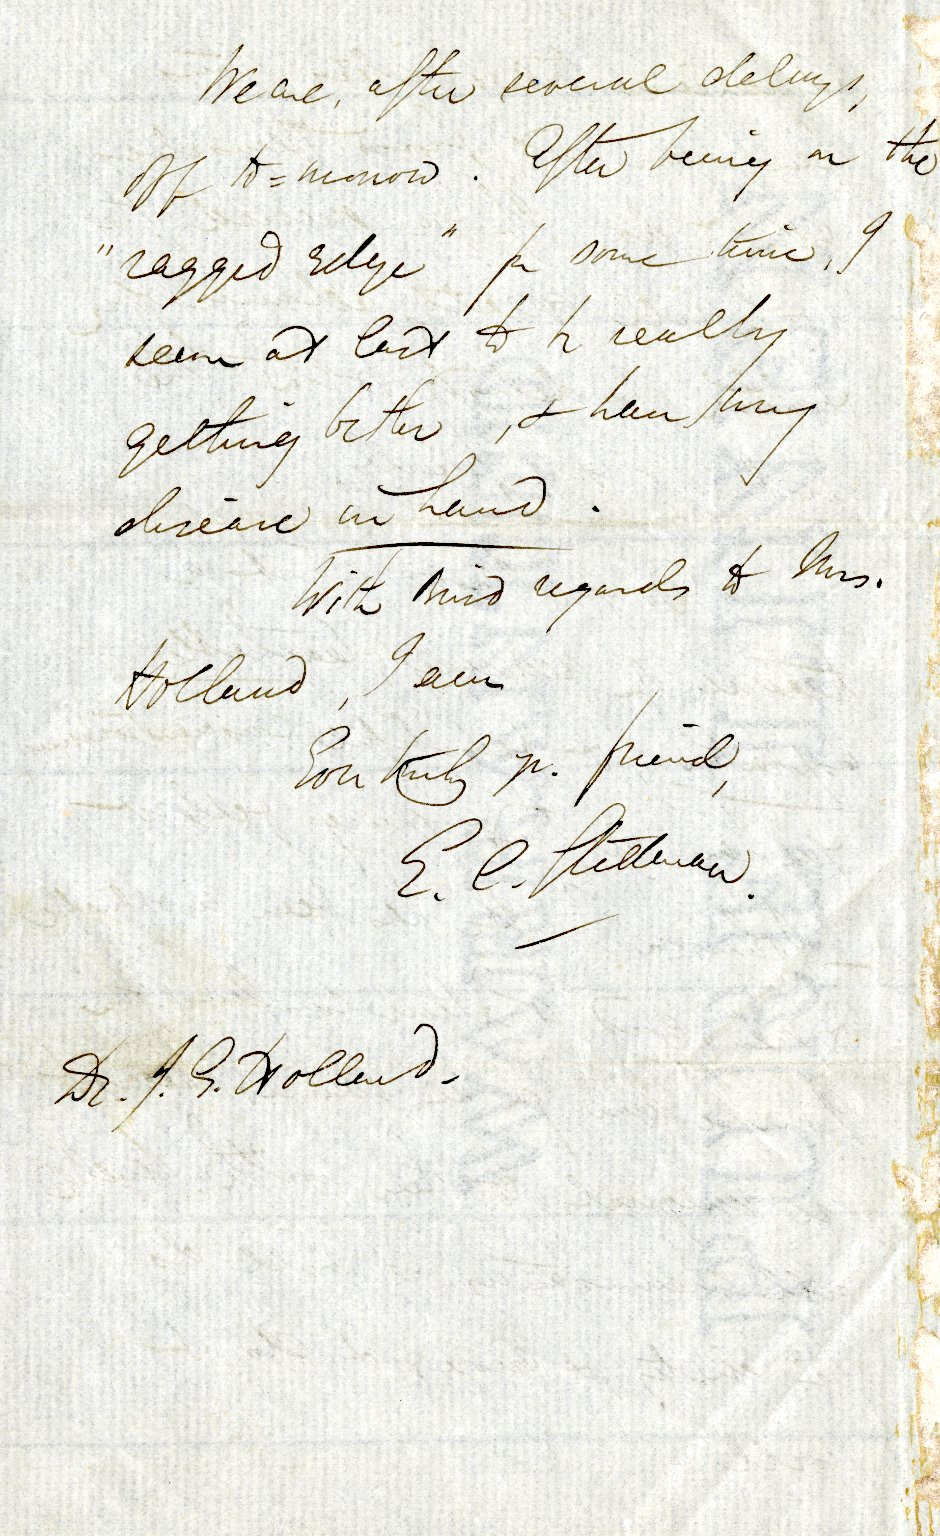 Stedman, Edmund C. ALS, 4 pages, February 1875